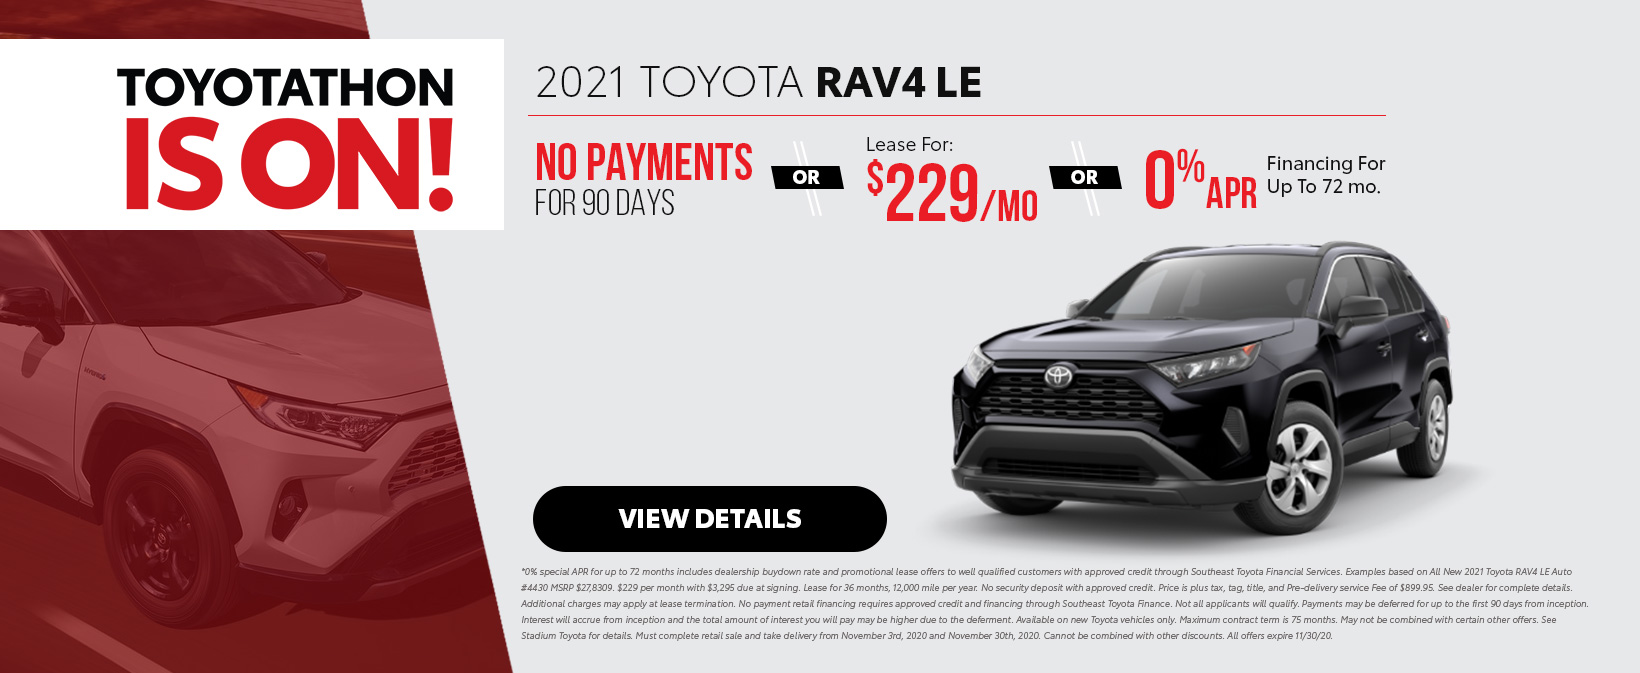 2021 Toyota RAV4 Offers